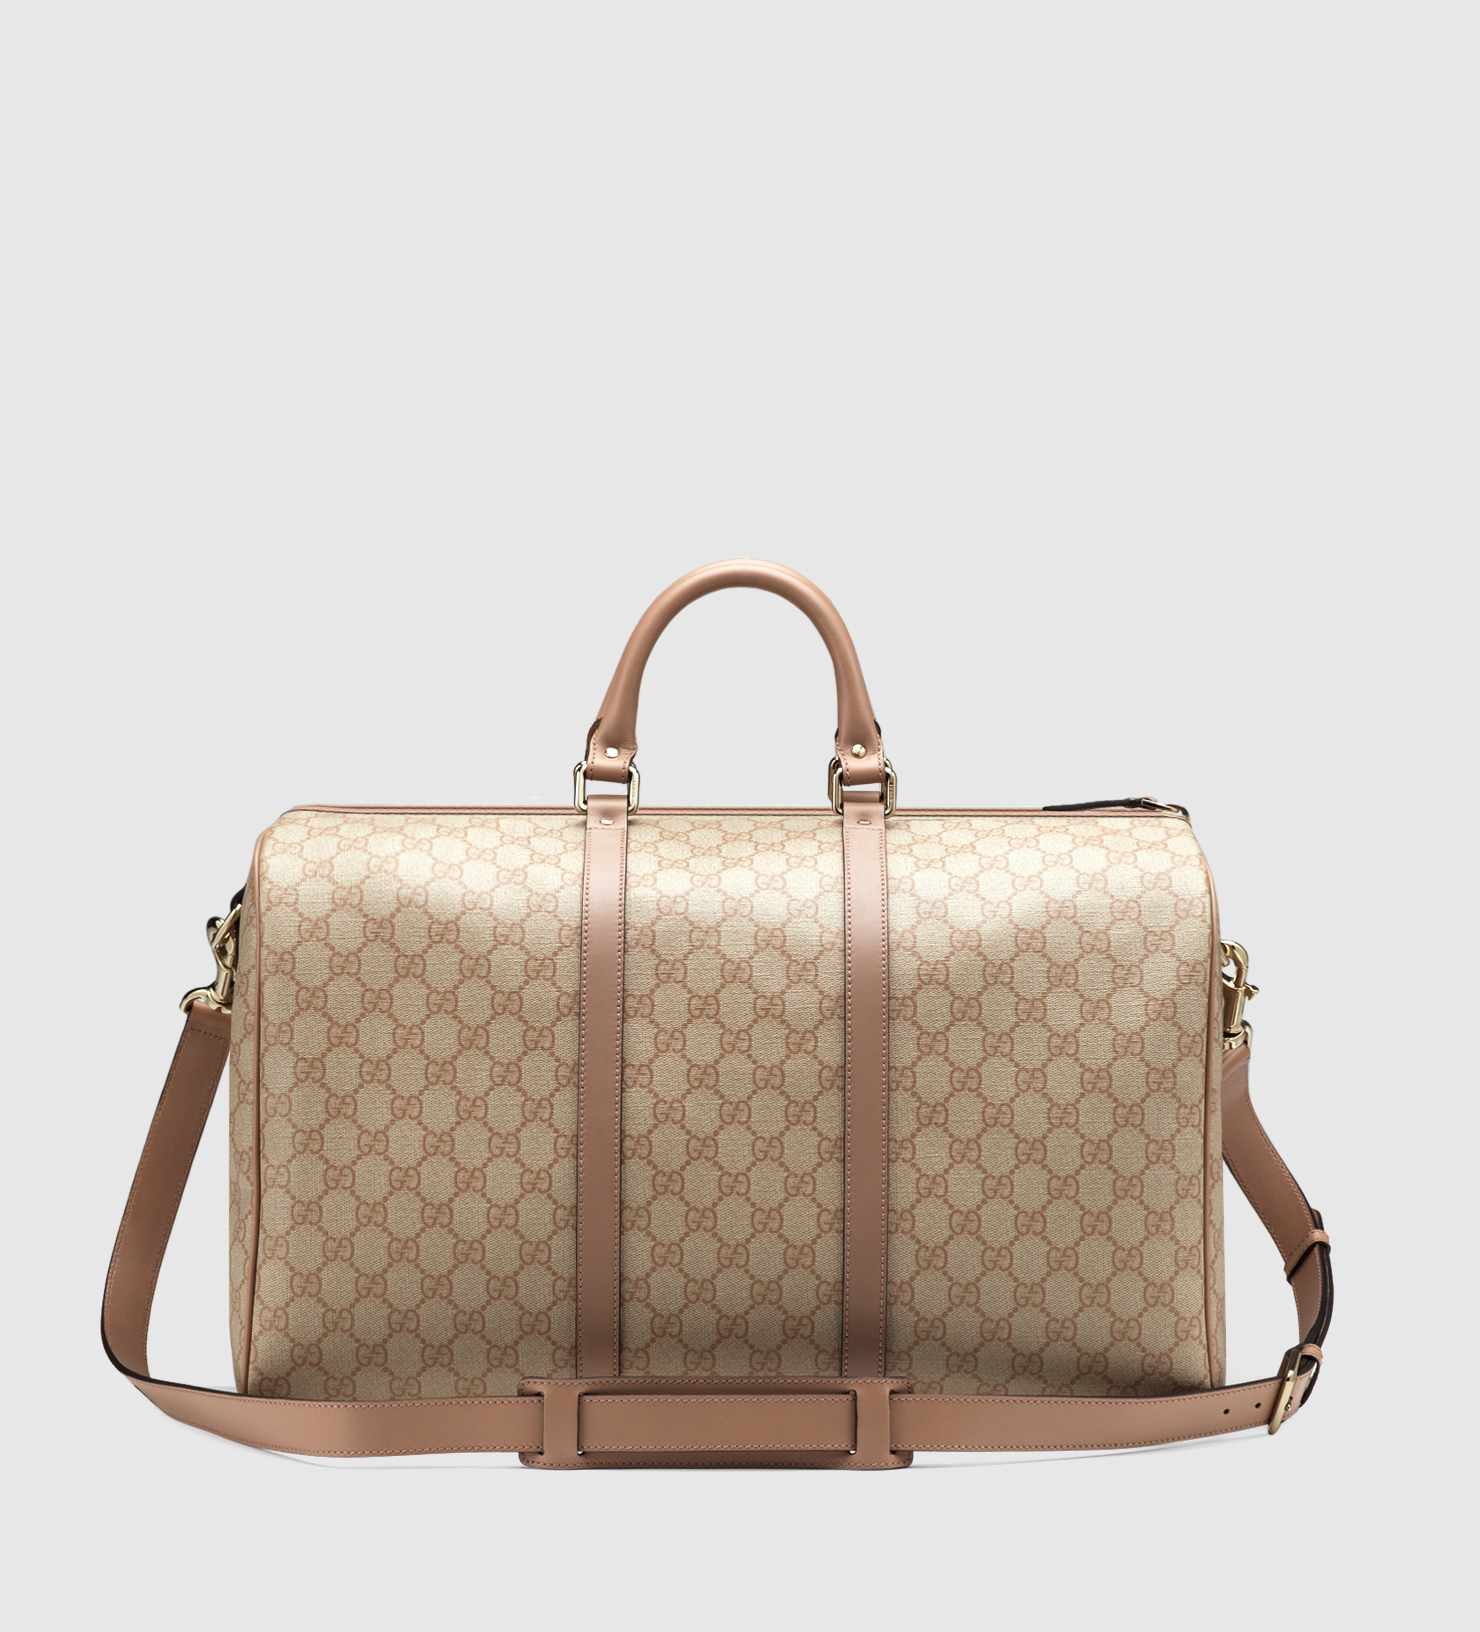 a5b29f366e35 Gucci Gg Supreme Canvas Carry-on Duffle Bag in Natural - Lyst